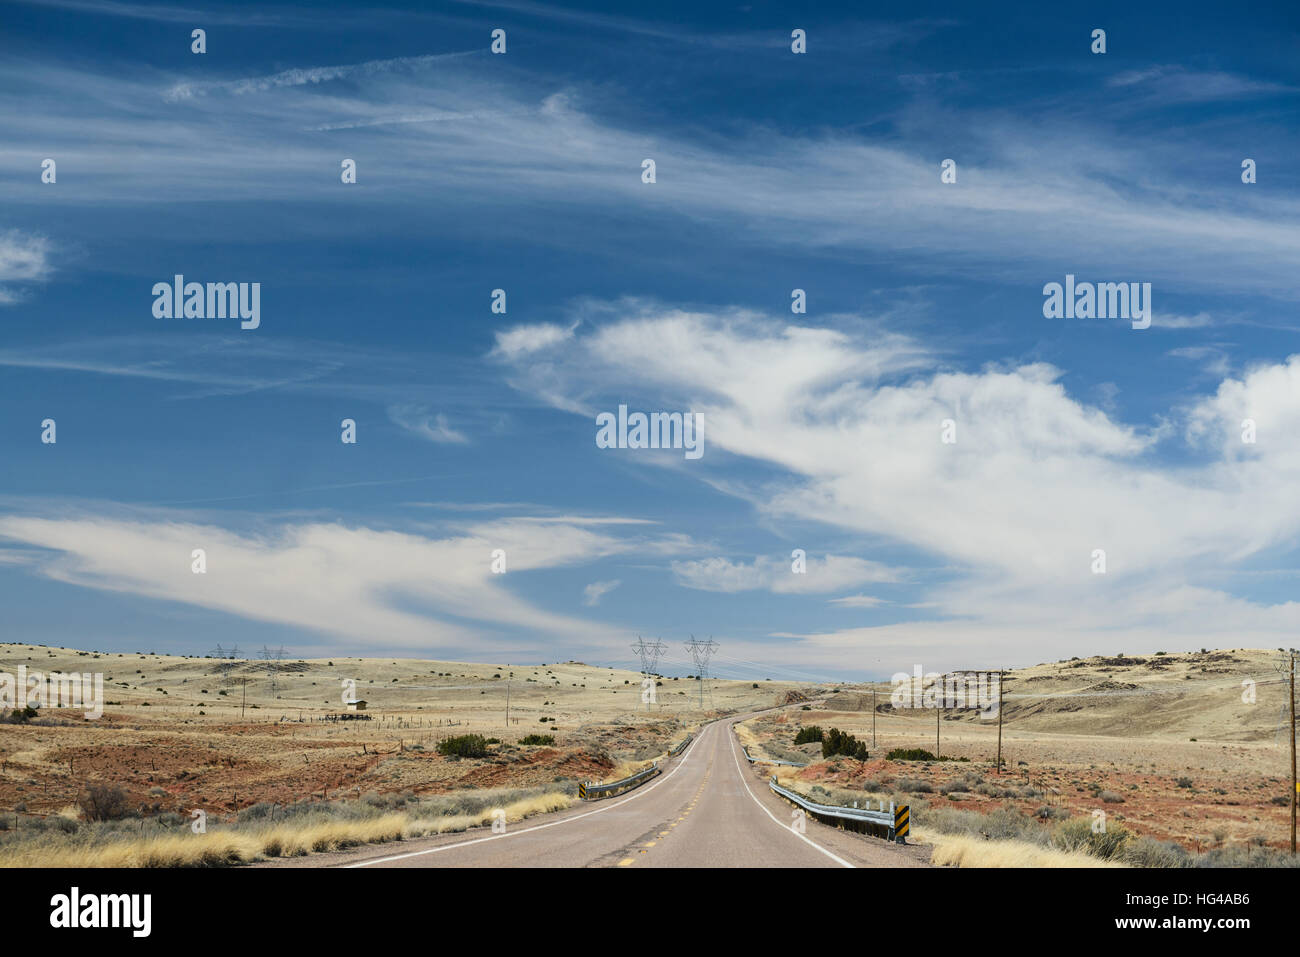 Small street in rural area of high desert in New Mexico, USA. Beautiful sky inspiring. - Stock Image